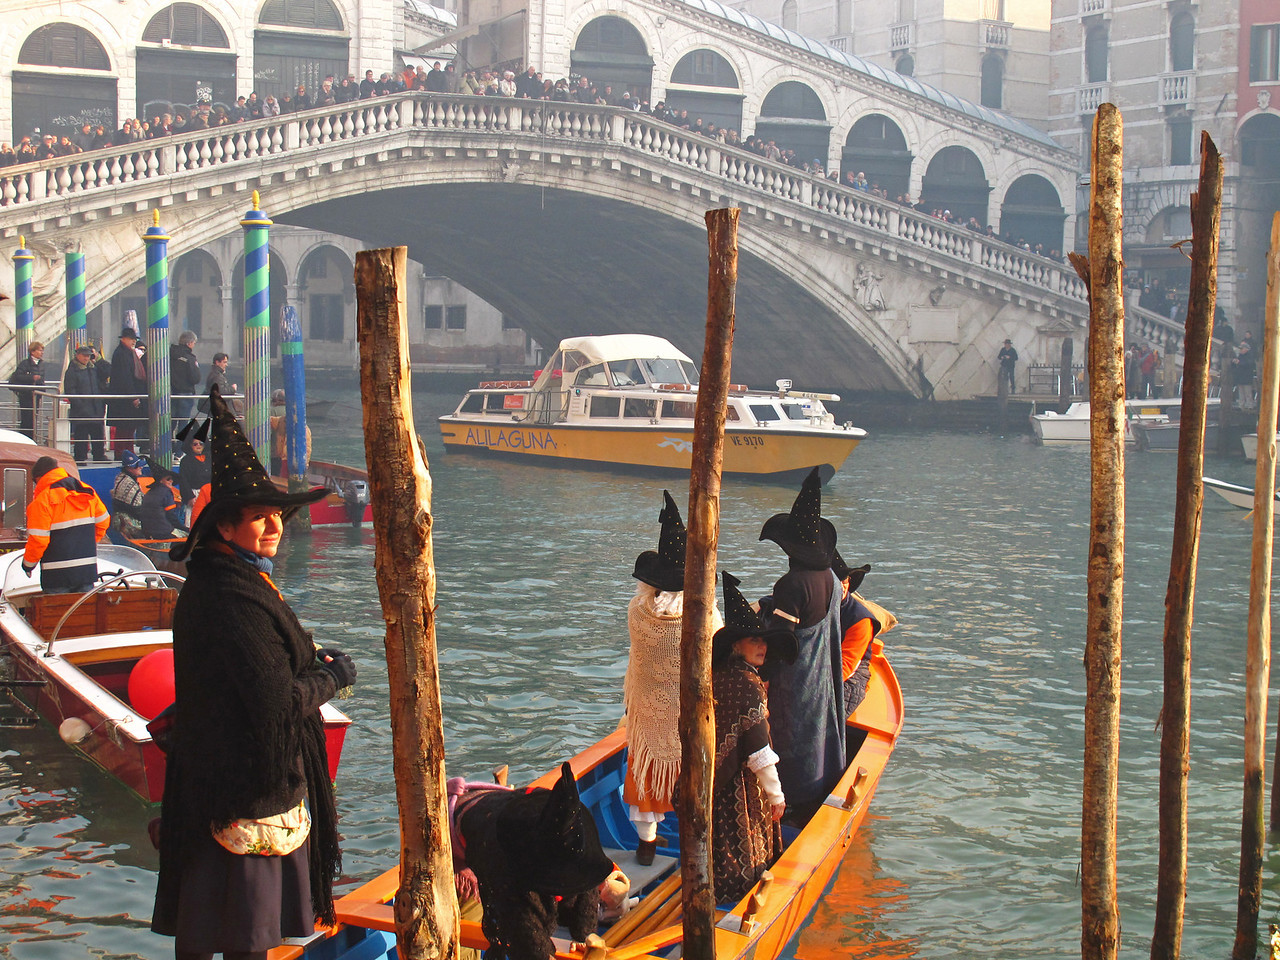 Watching the Regata delle Befane in Venice